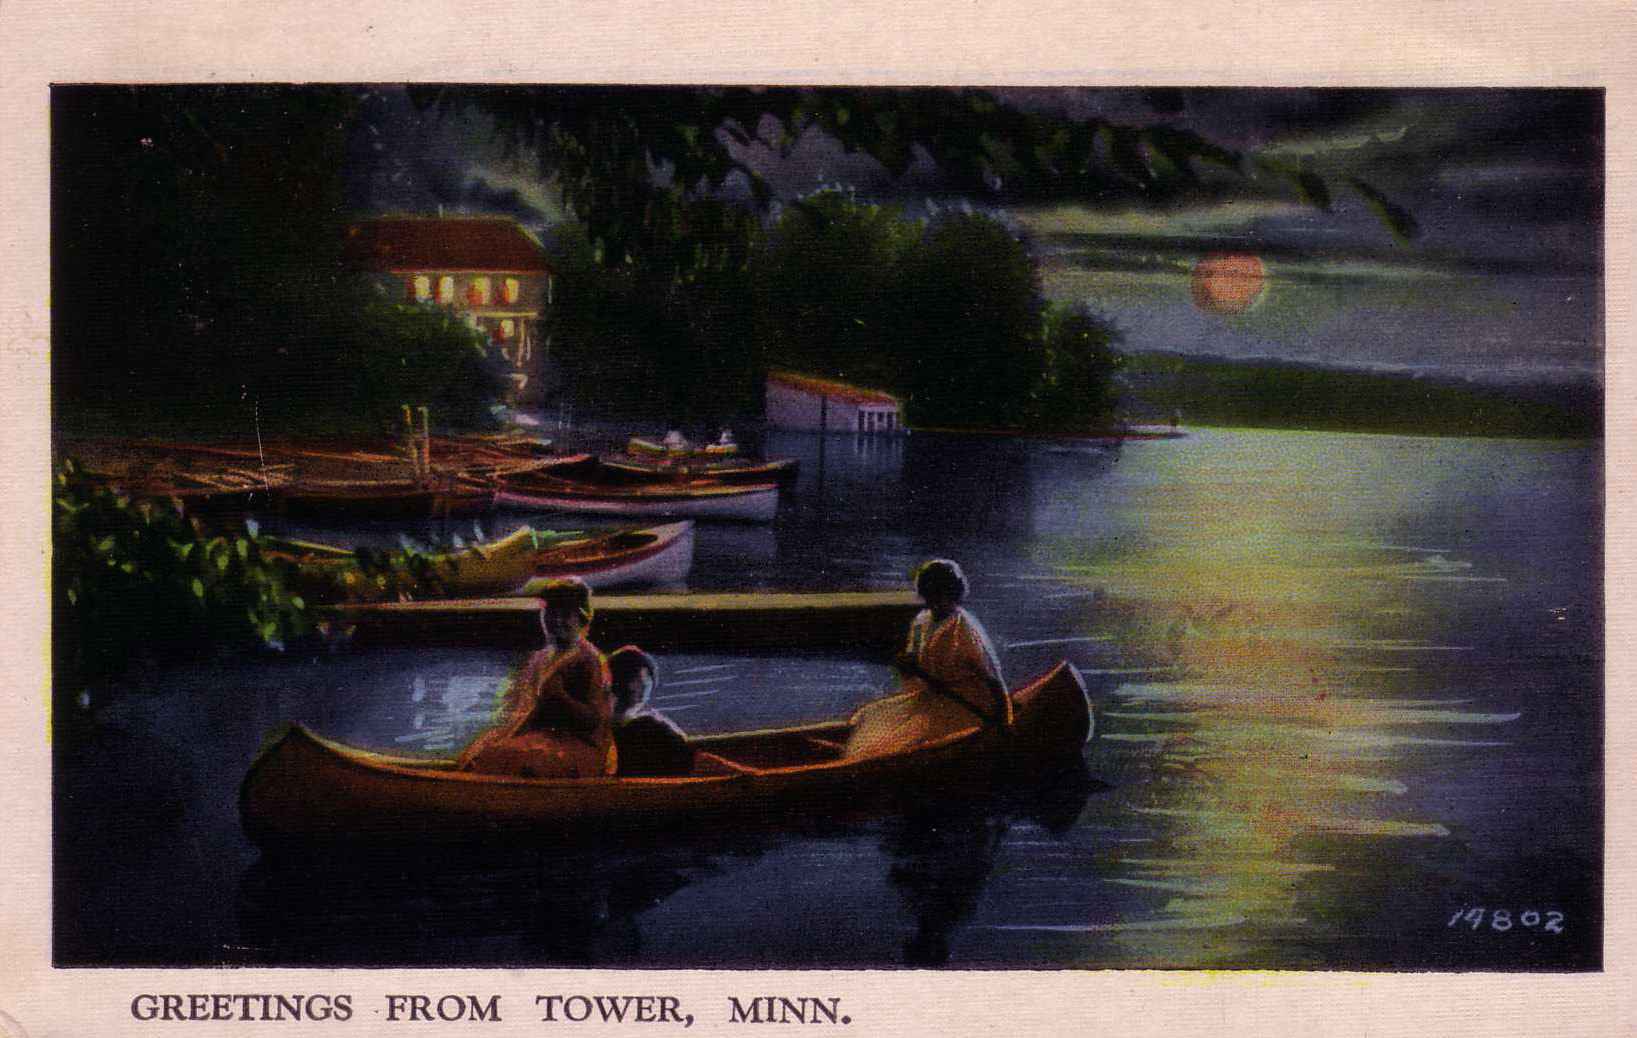 Three people enjoy a moonlit paddle on Lake Vermilion in this 1939 full-color linen postcard.